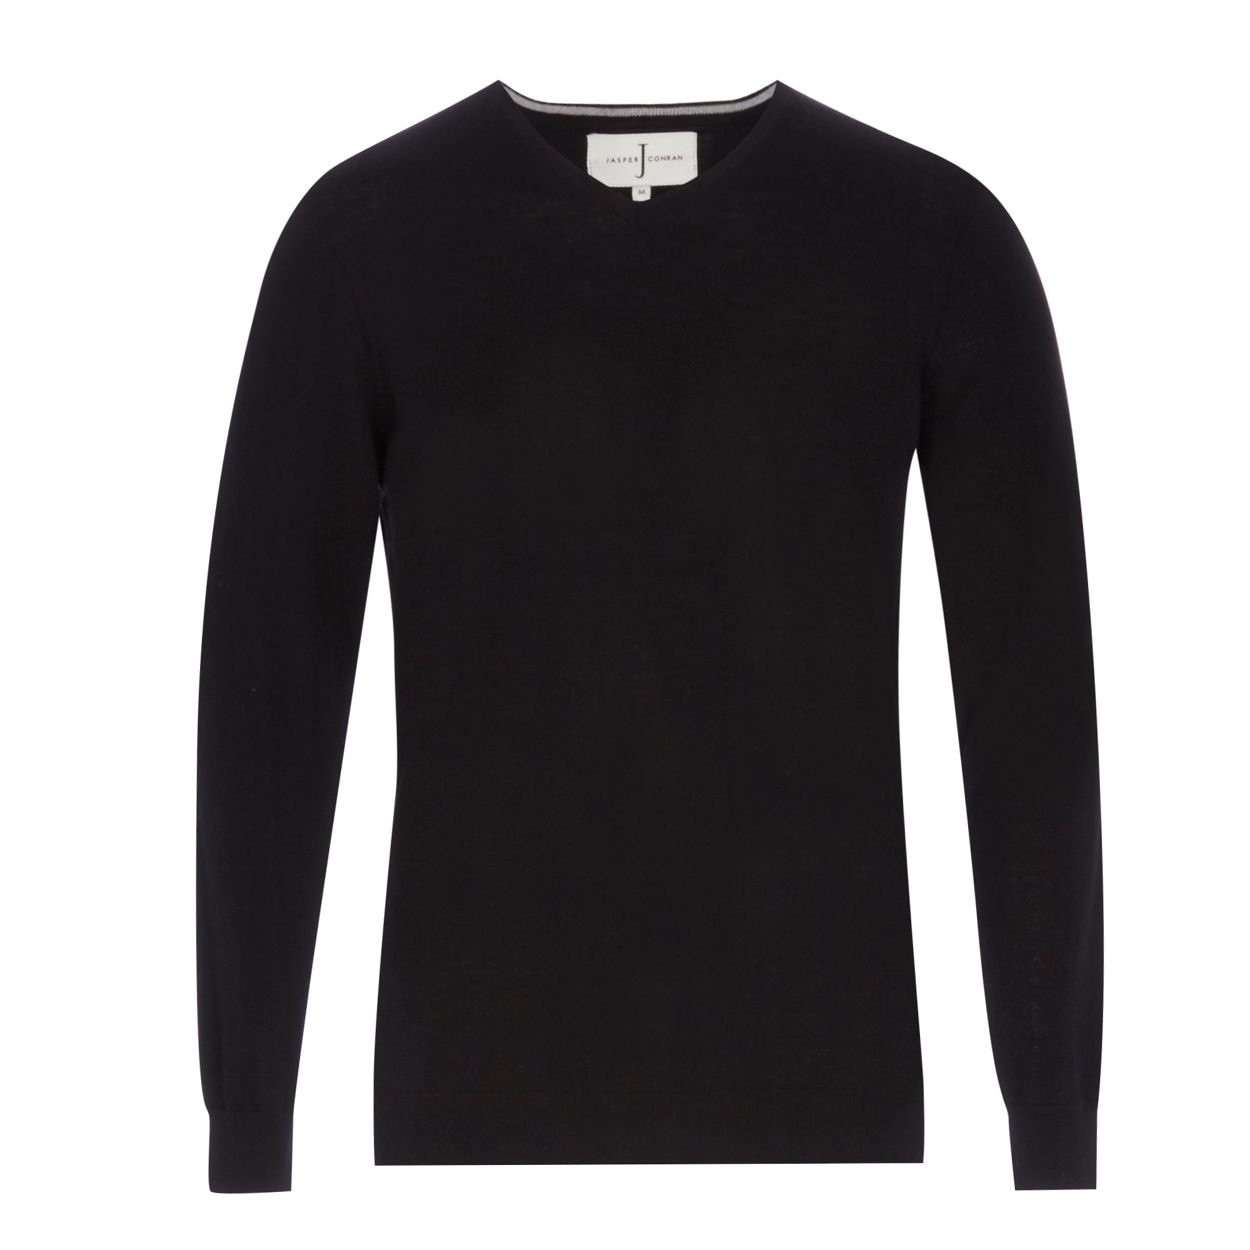 J by Jasper Conran Black Merino wool V neck jumper